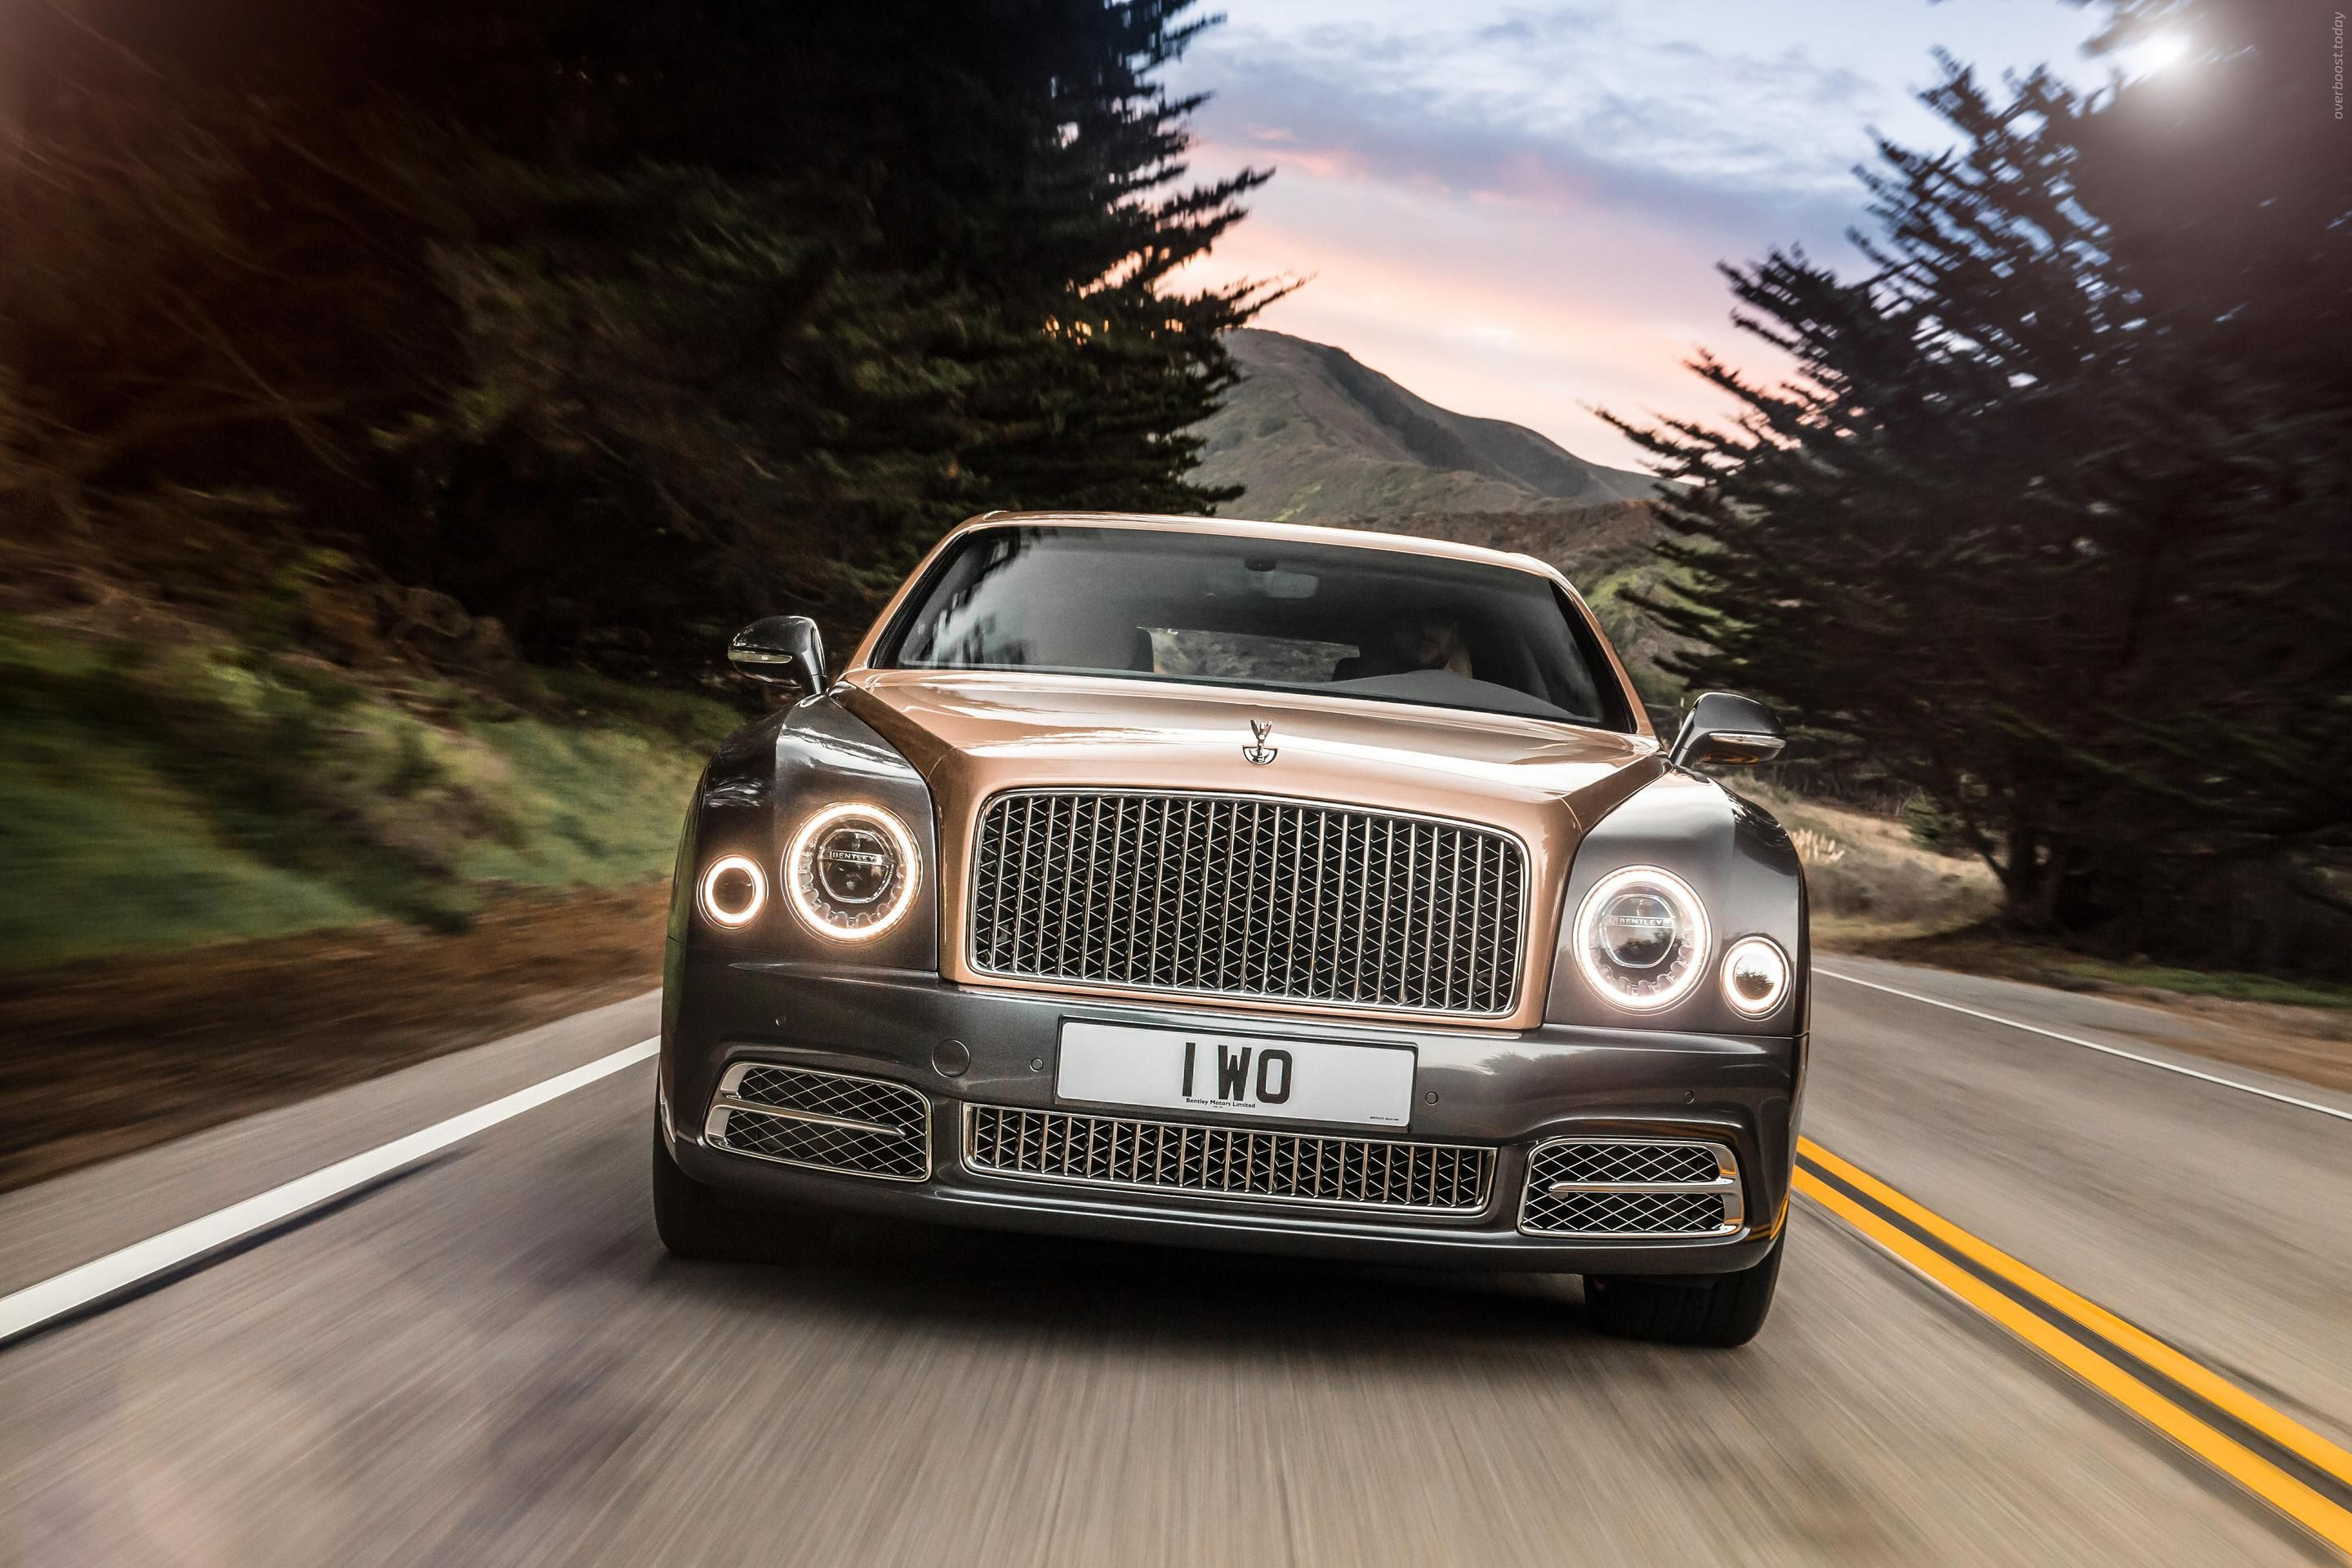 cars bentley gear gt review luxury continental car top reviews